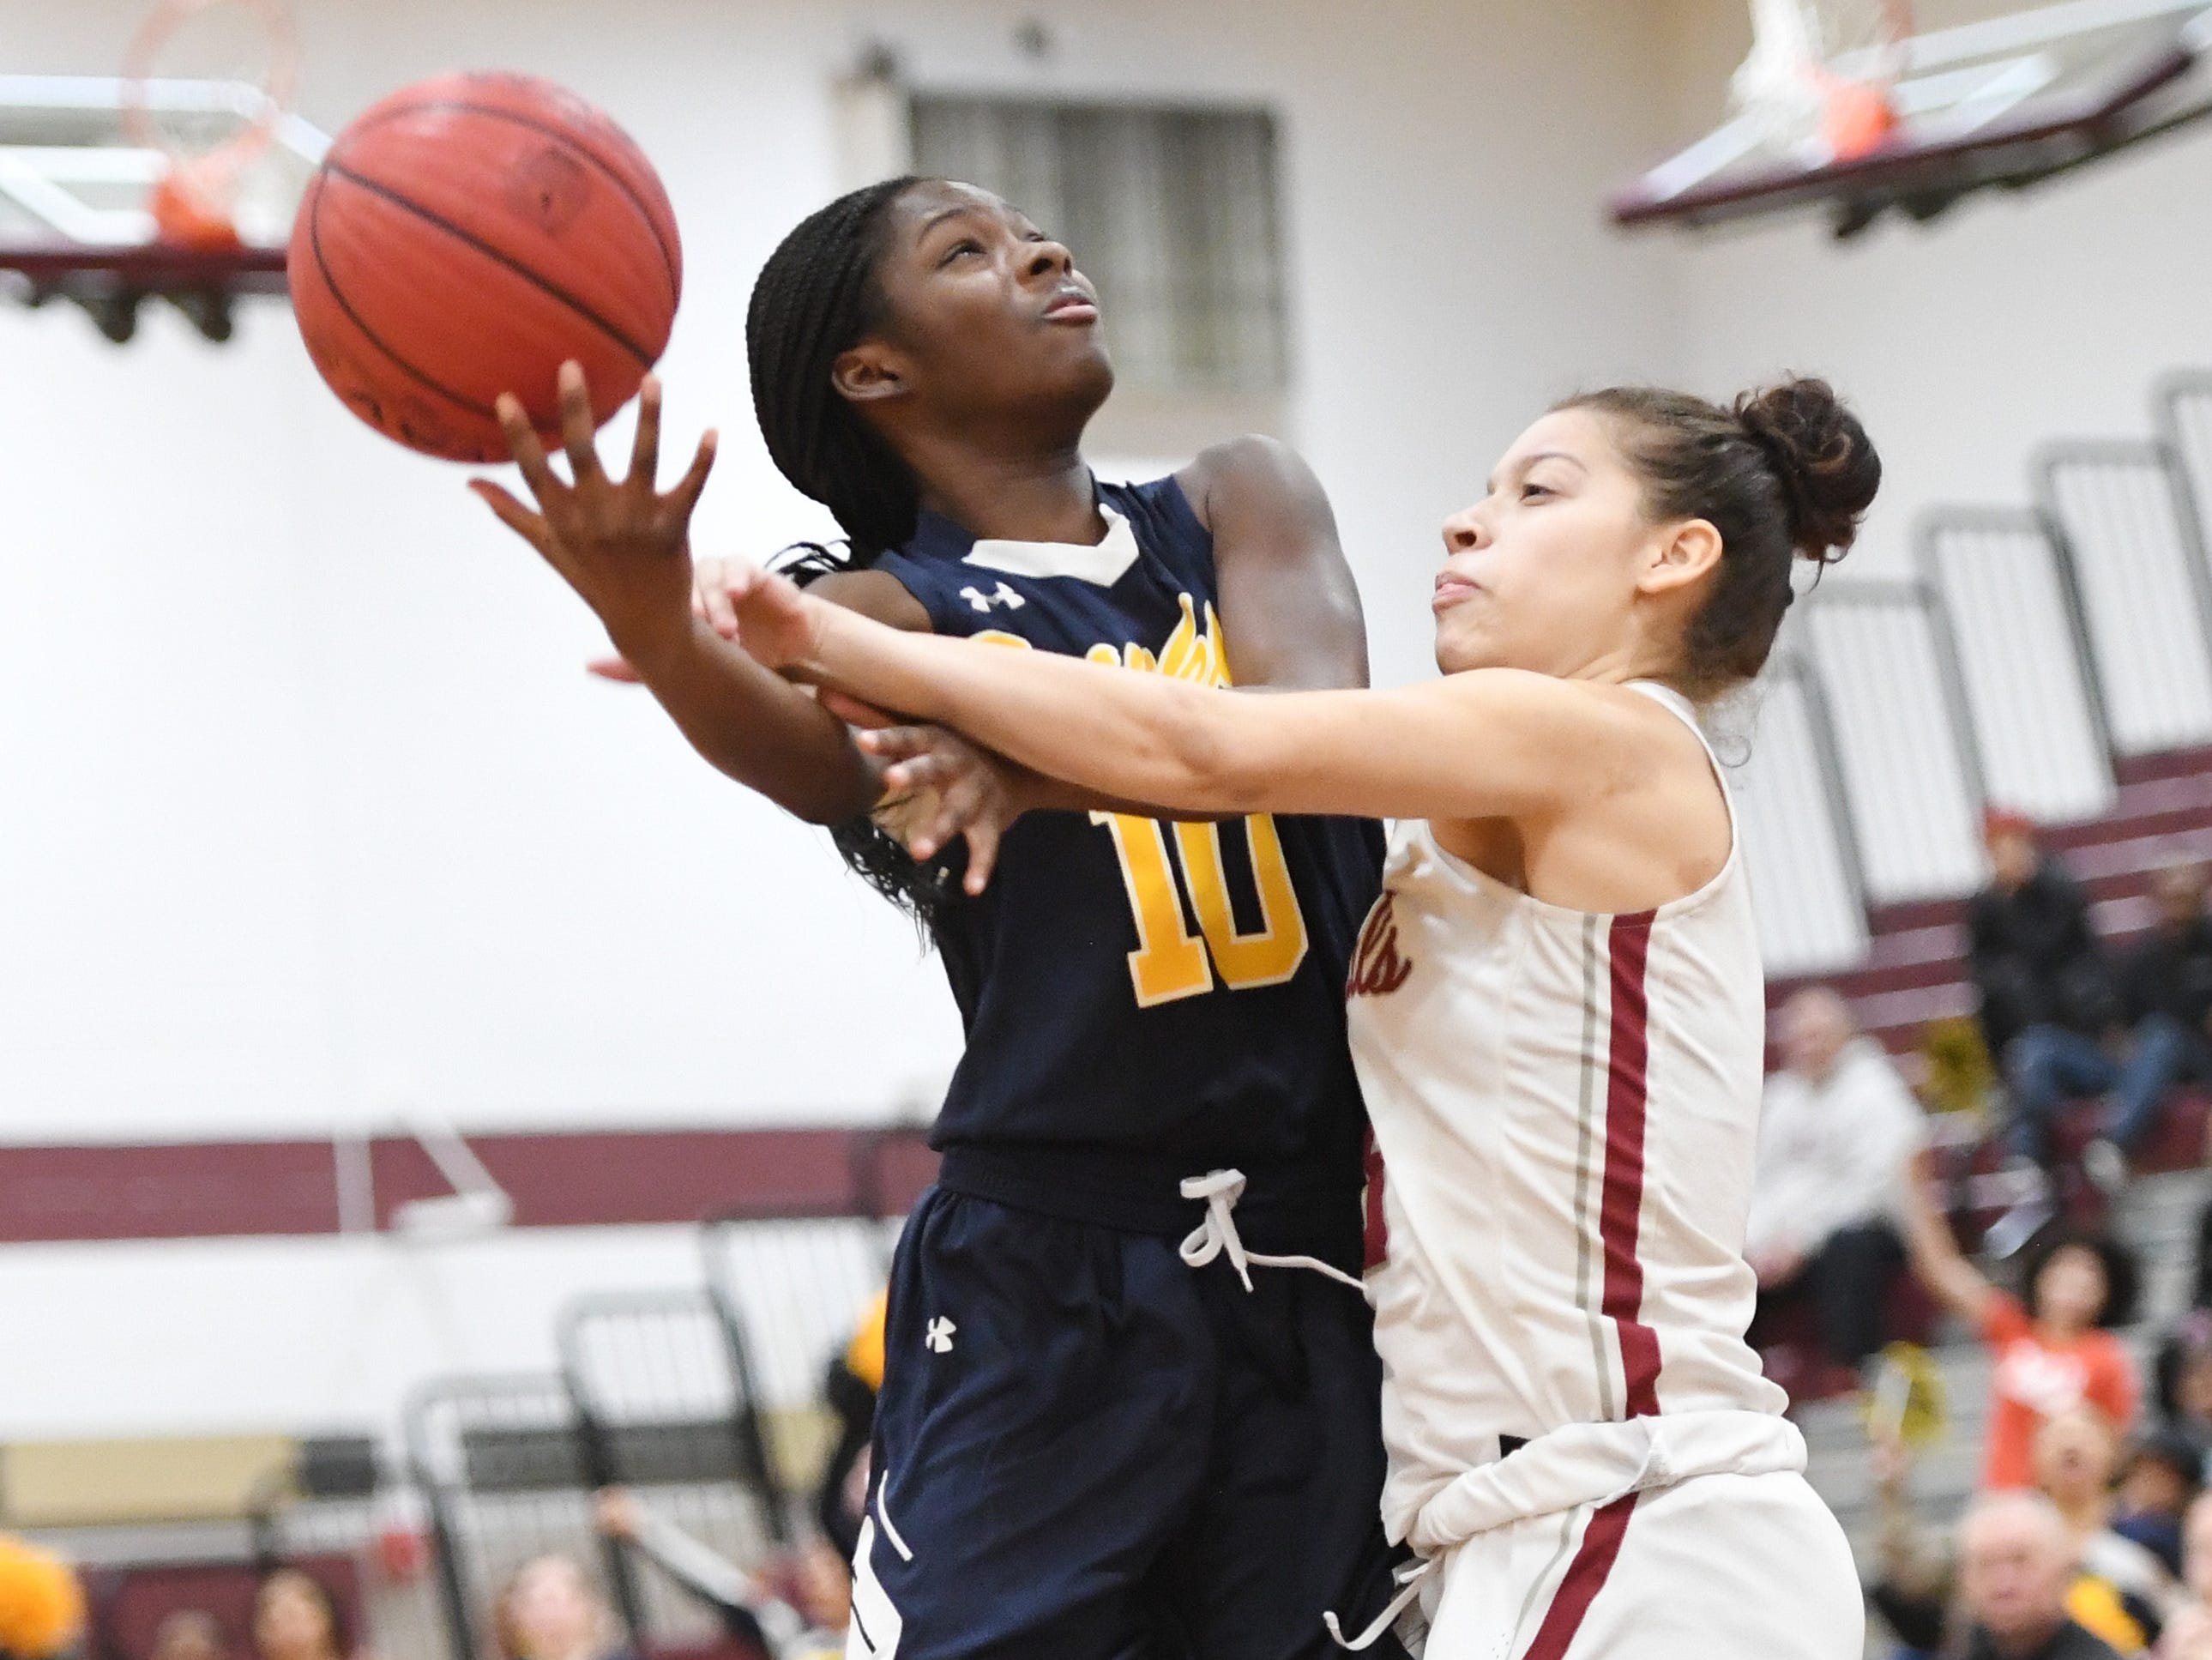 Franklin vs. Bloomfield in the girls basketball Group IV semifinal at Union High School on Thursday, March 7, 2019. F #10 Keona Schneck drives to the basket as B #5 Chiara Hillario defends.